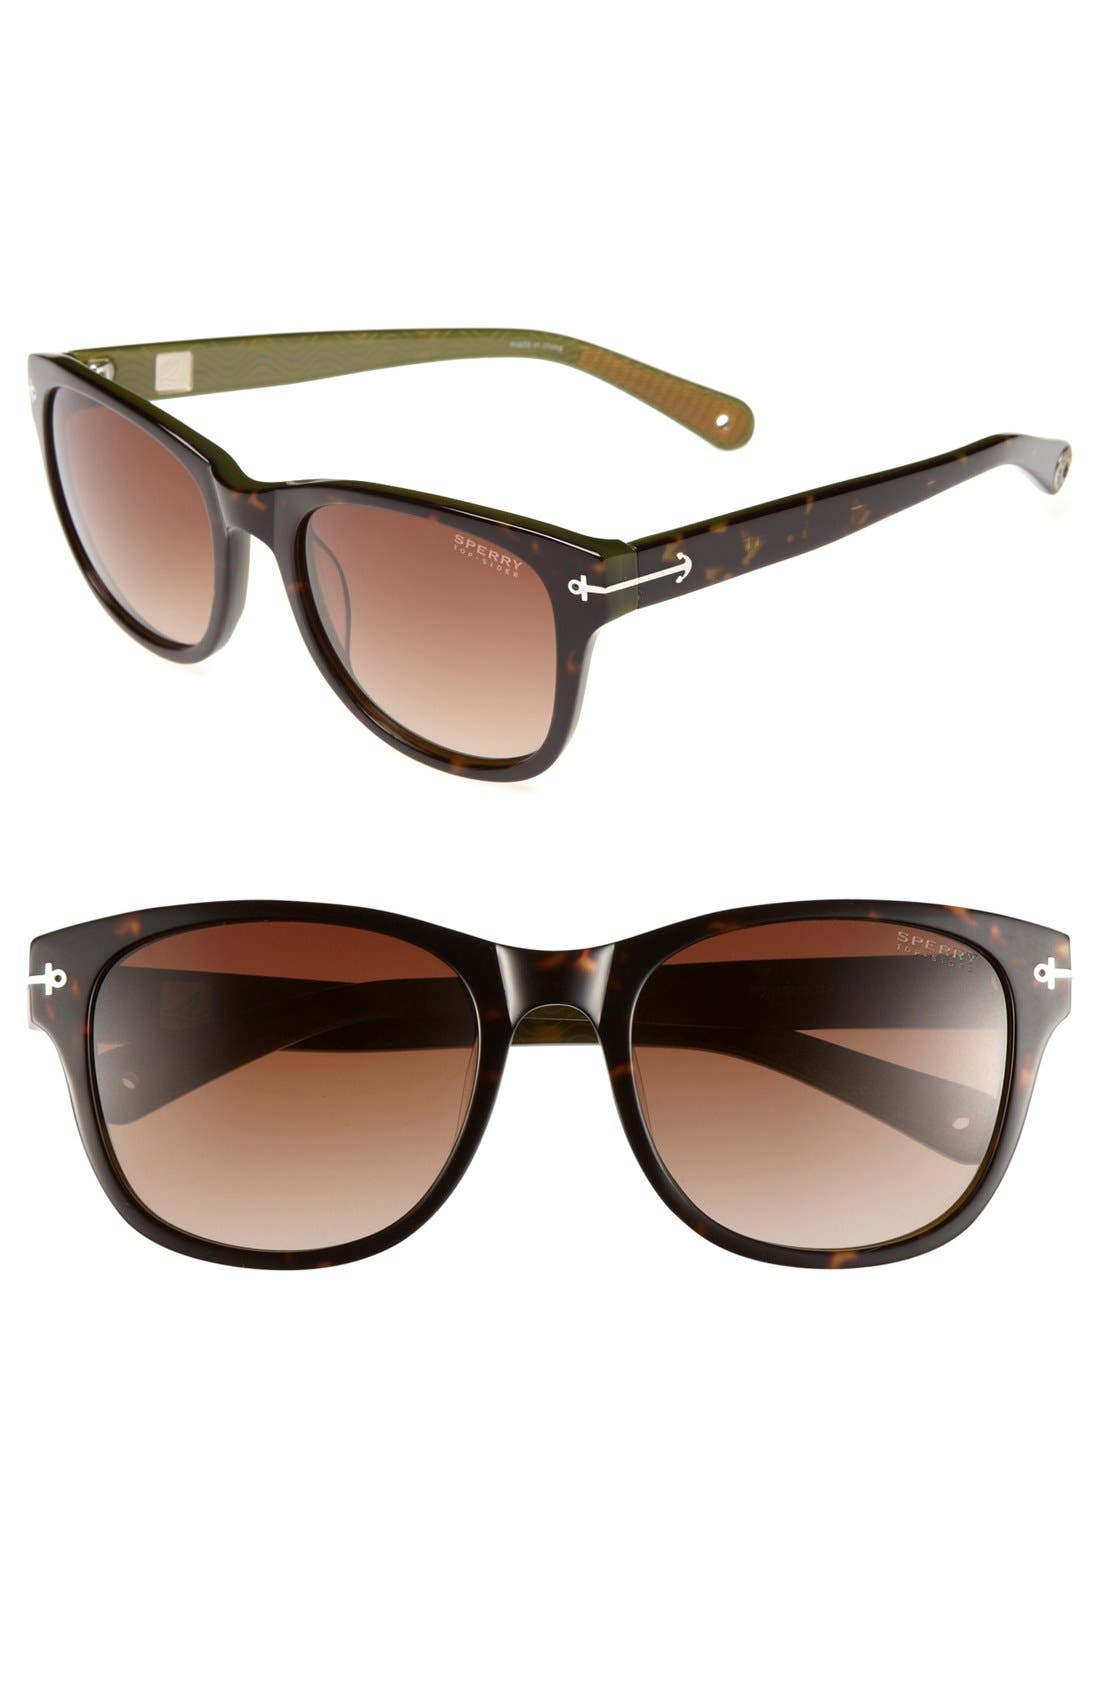 Main Image - Sperry Top-Sider® 'Portsmouth' 54mm Sunglasses (Online Only)